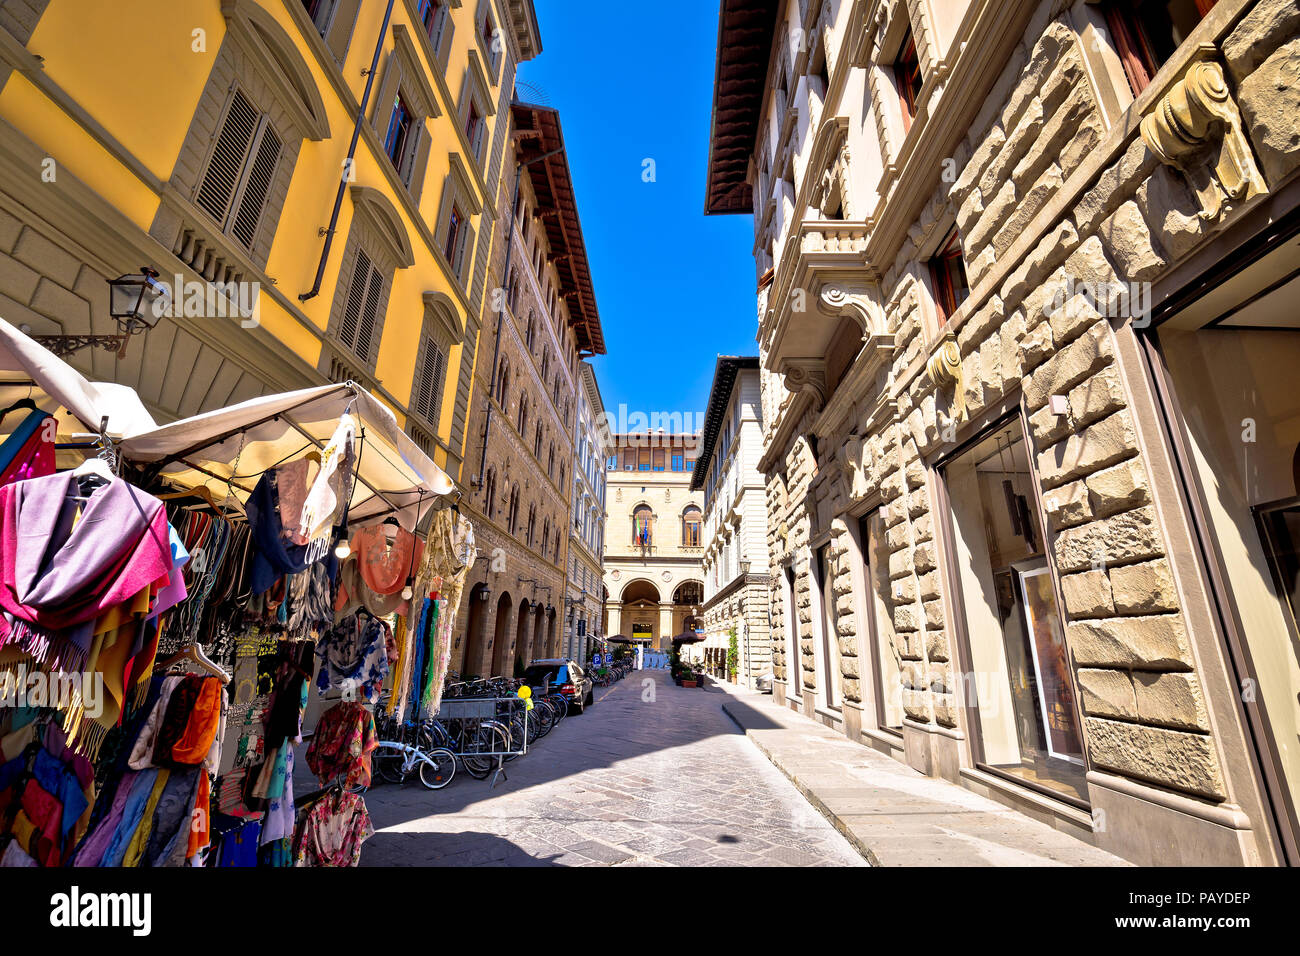 Colorful merchant street in Florence view, Tuscany region of Italy - Stock Image